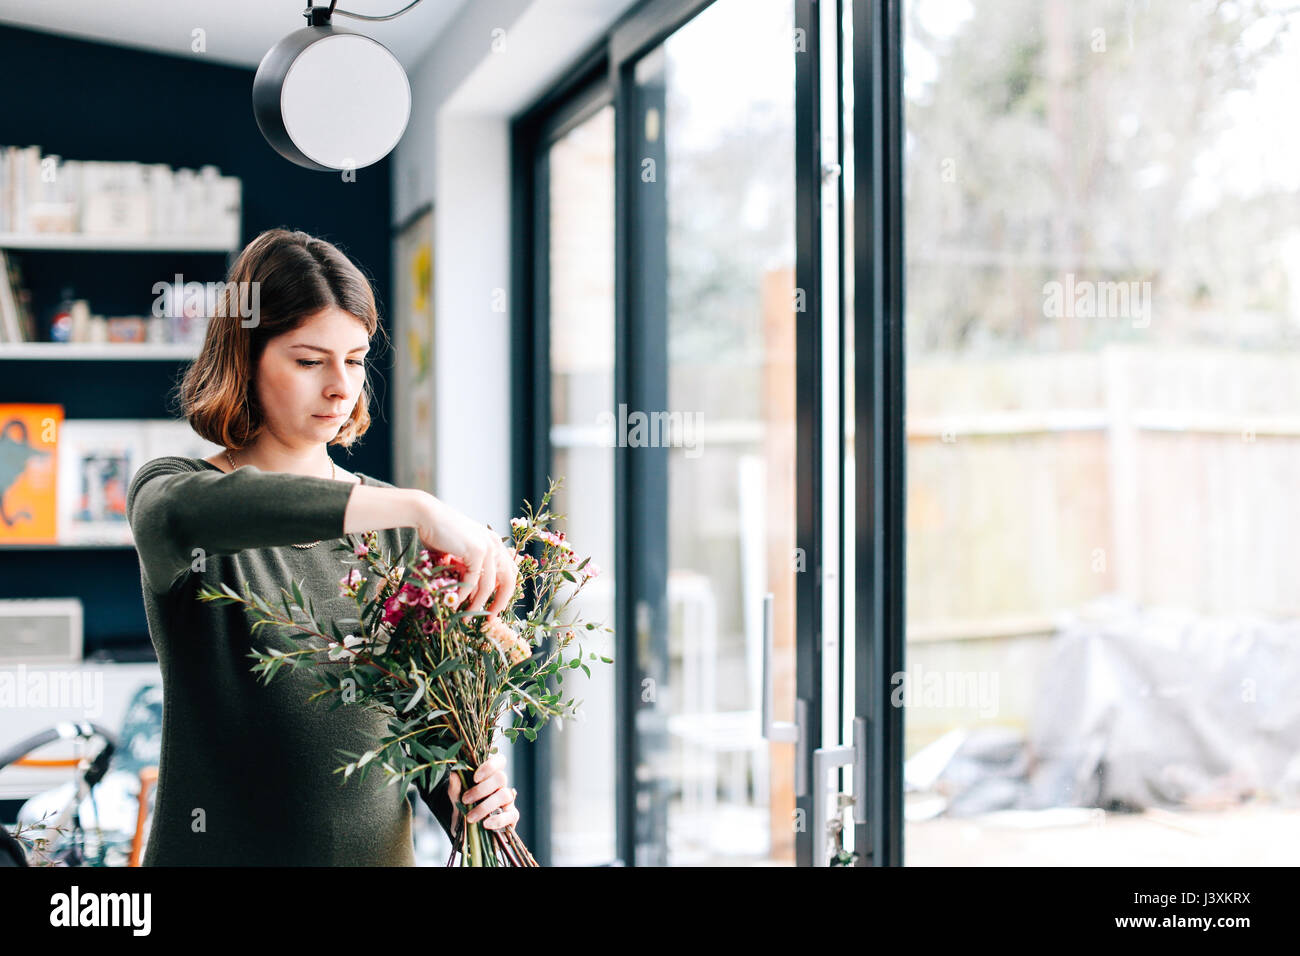 Florist student arranging bouquet at flower arranging workshop - Stock Image